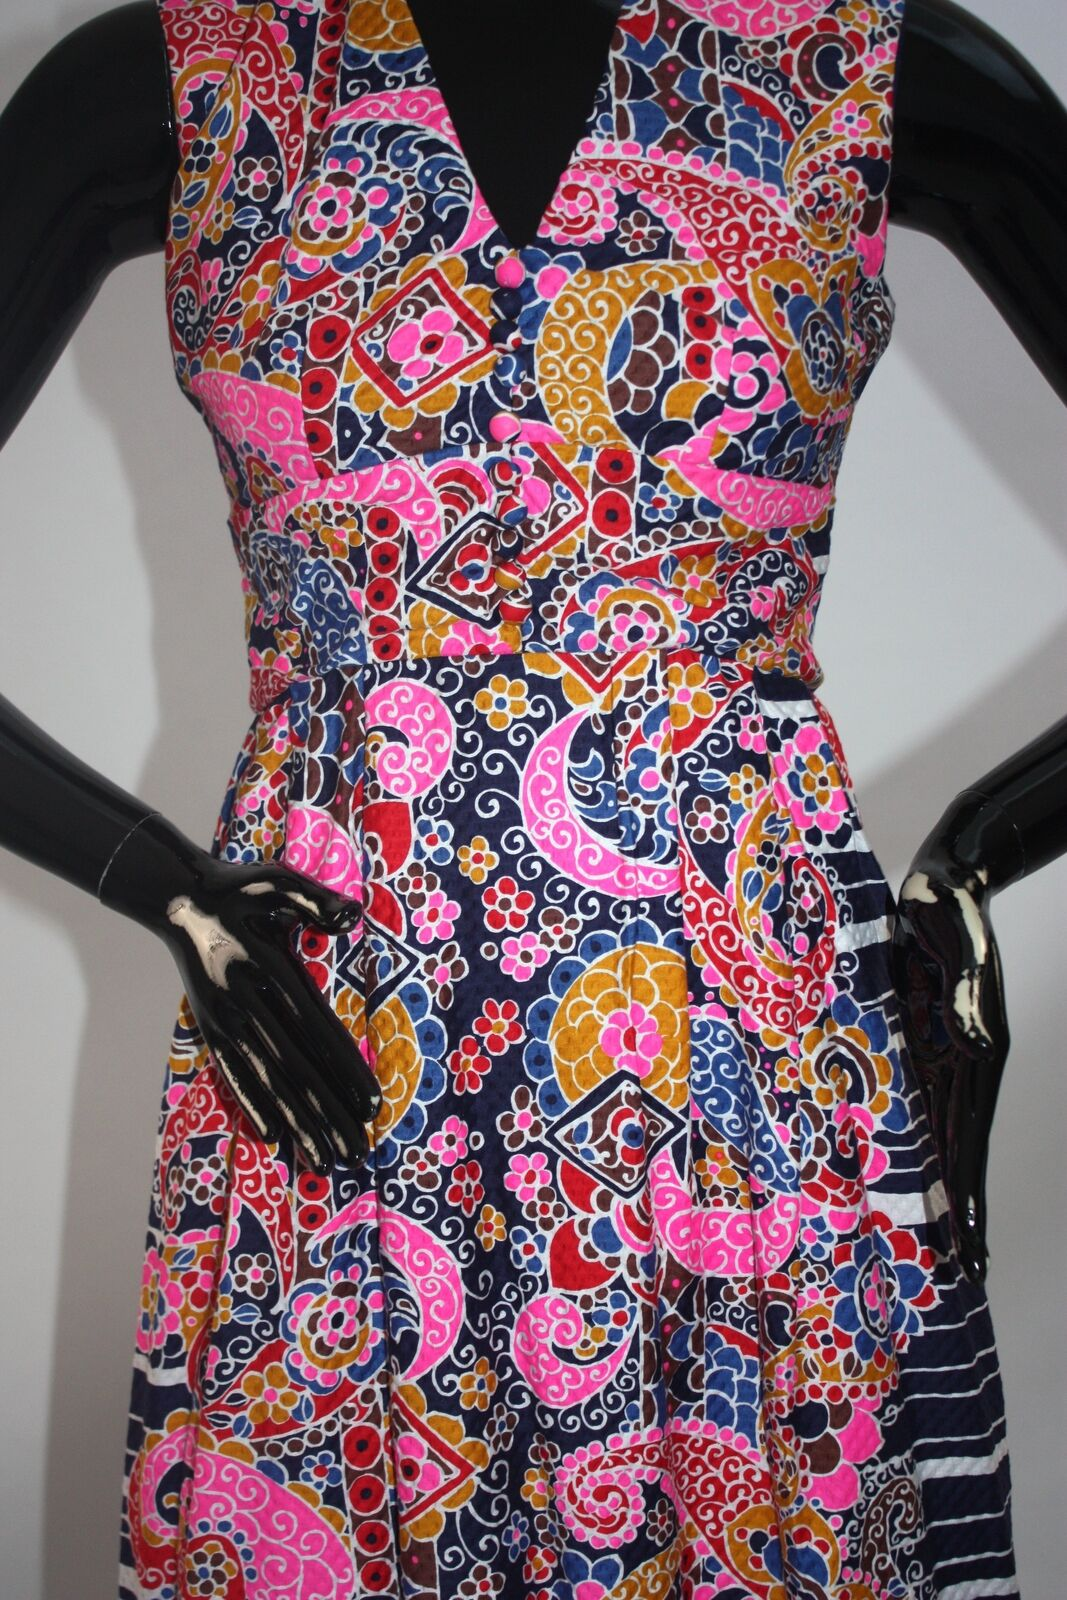 Vintage 1970s Psychedelic print maxi dress - image 3